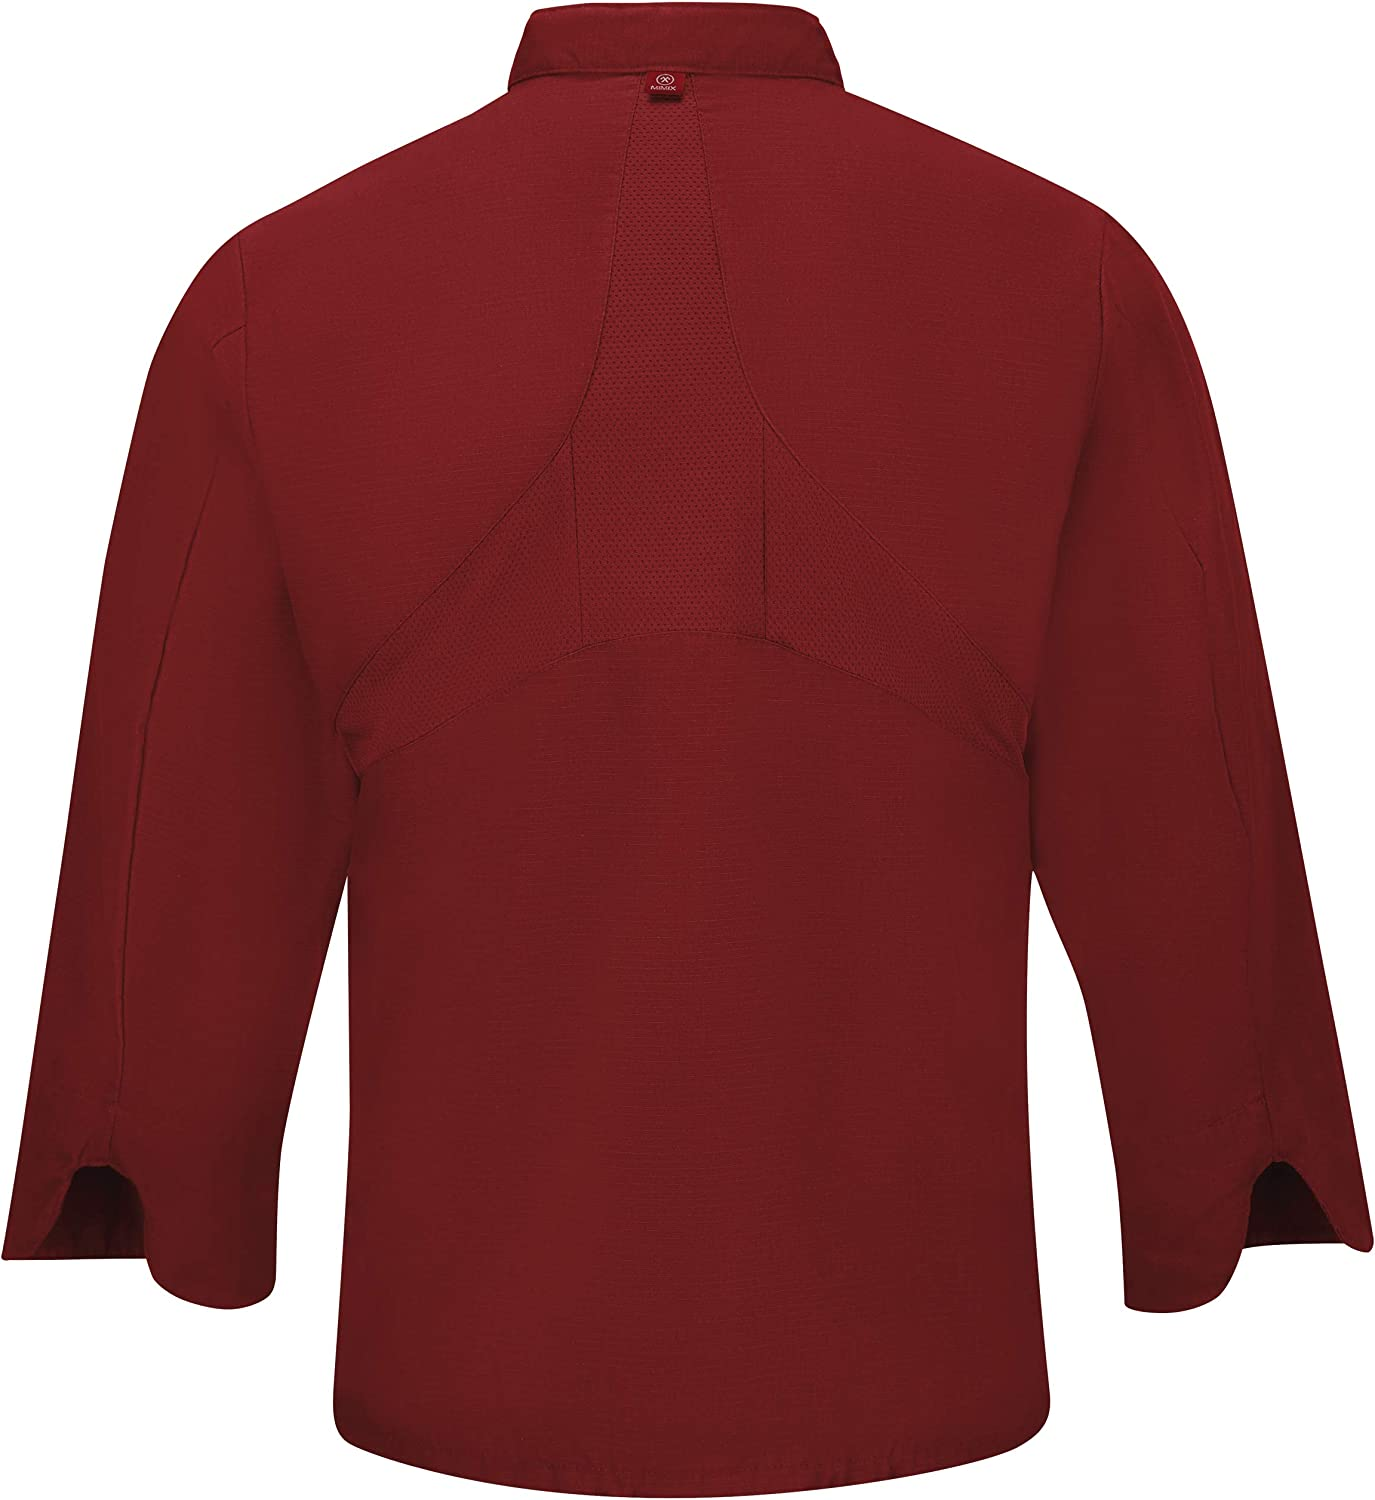 Red Kap Men's Long Sleeve Ten Button Chef Coat with Mimix and Oilblok: Clothing, Shoes & Jewelry